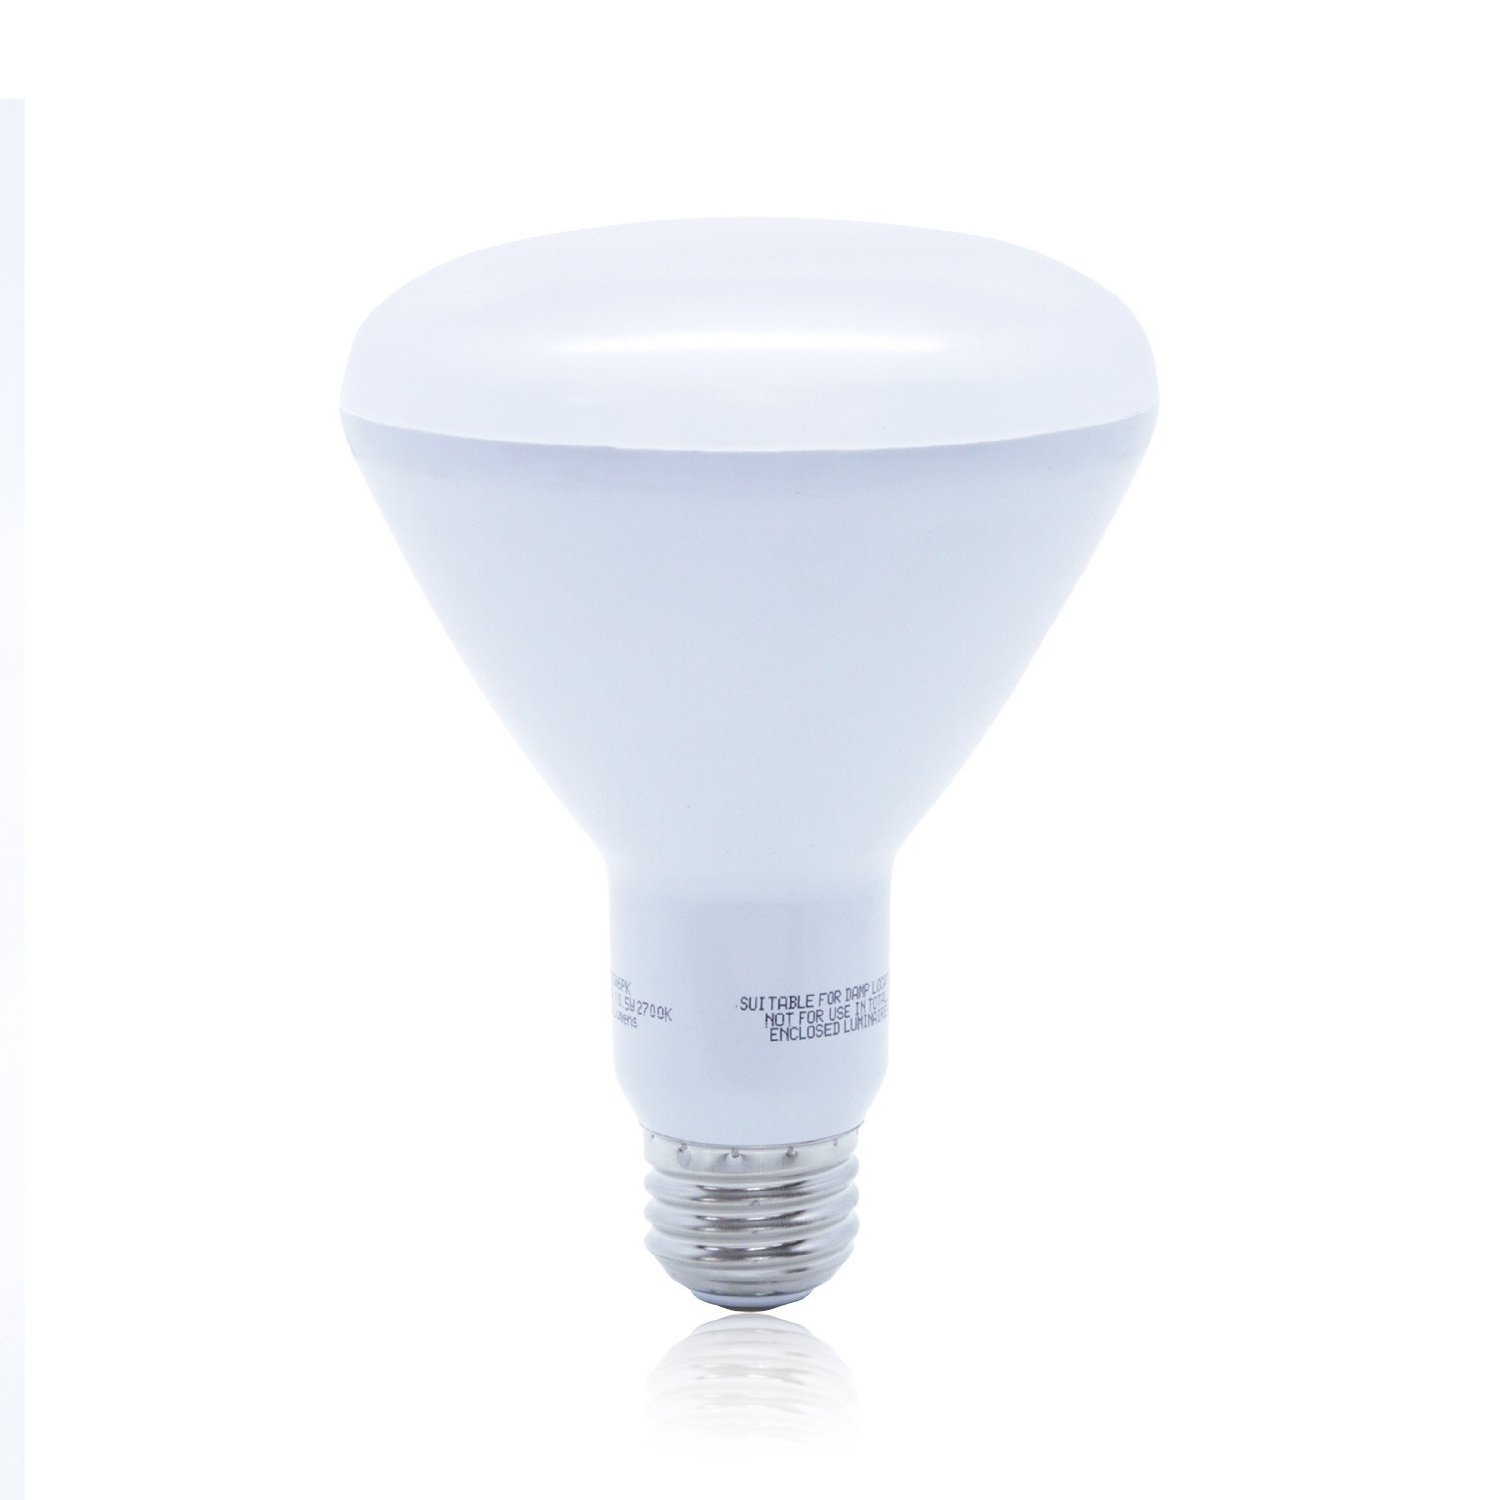 philips at diy b bq can bulb reflector bulbs q spot departments light prd led dimmable